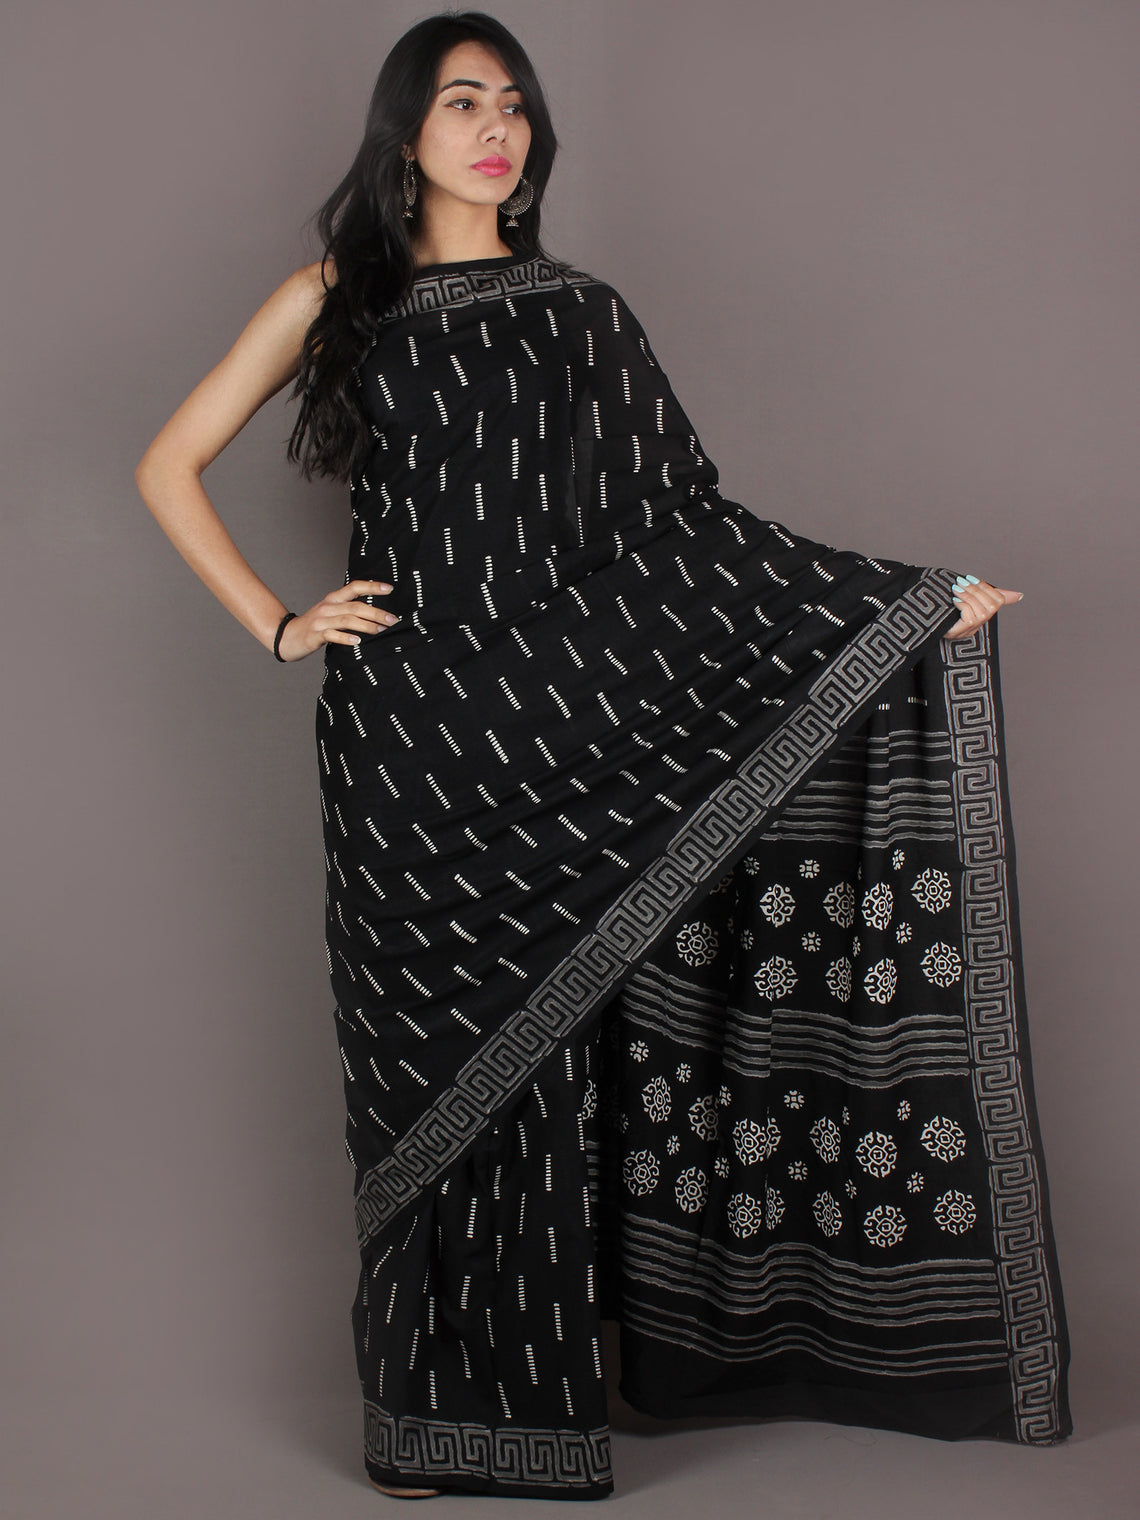 Black Grey White Hand Block Printed in Natural Colors Cotton Mul Saree - S03170922